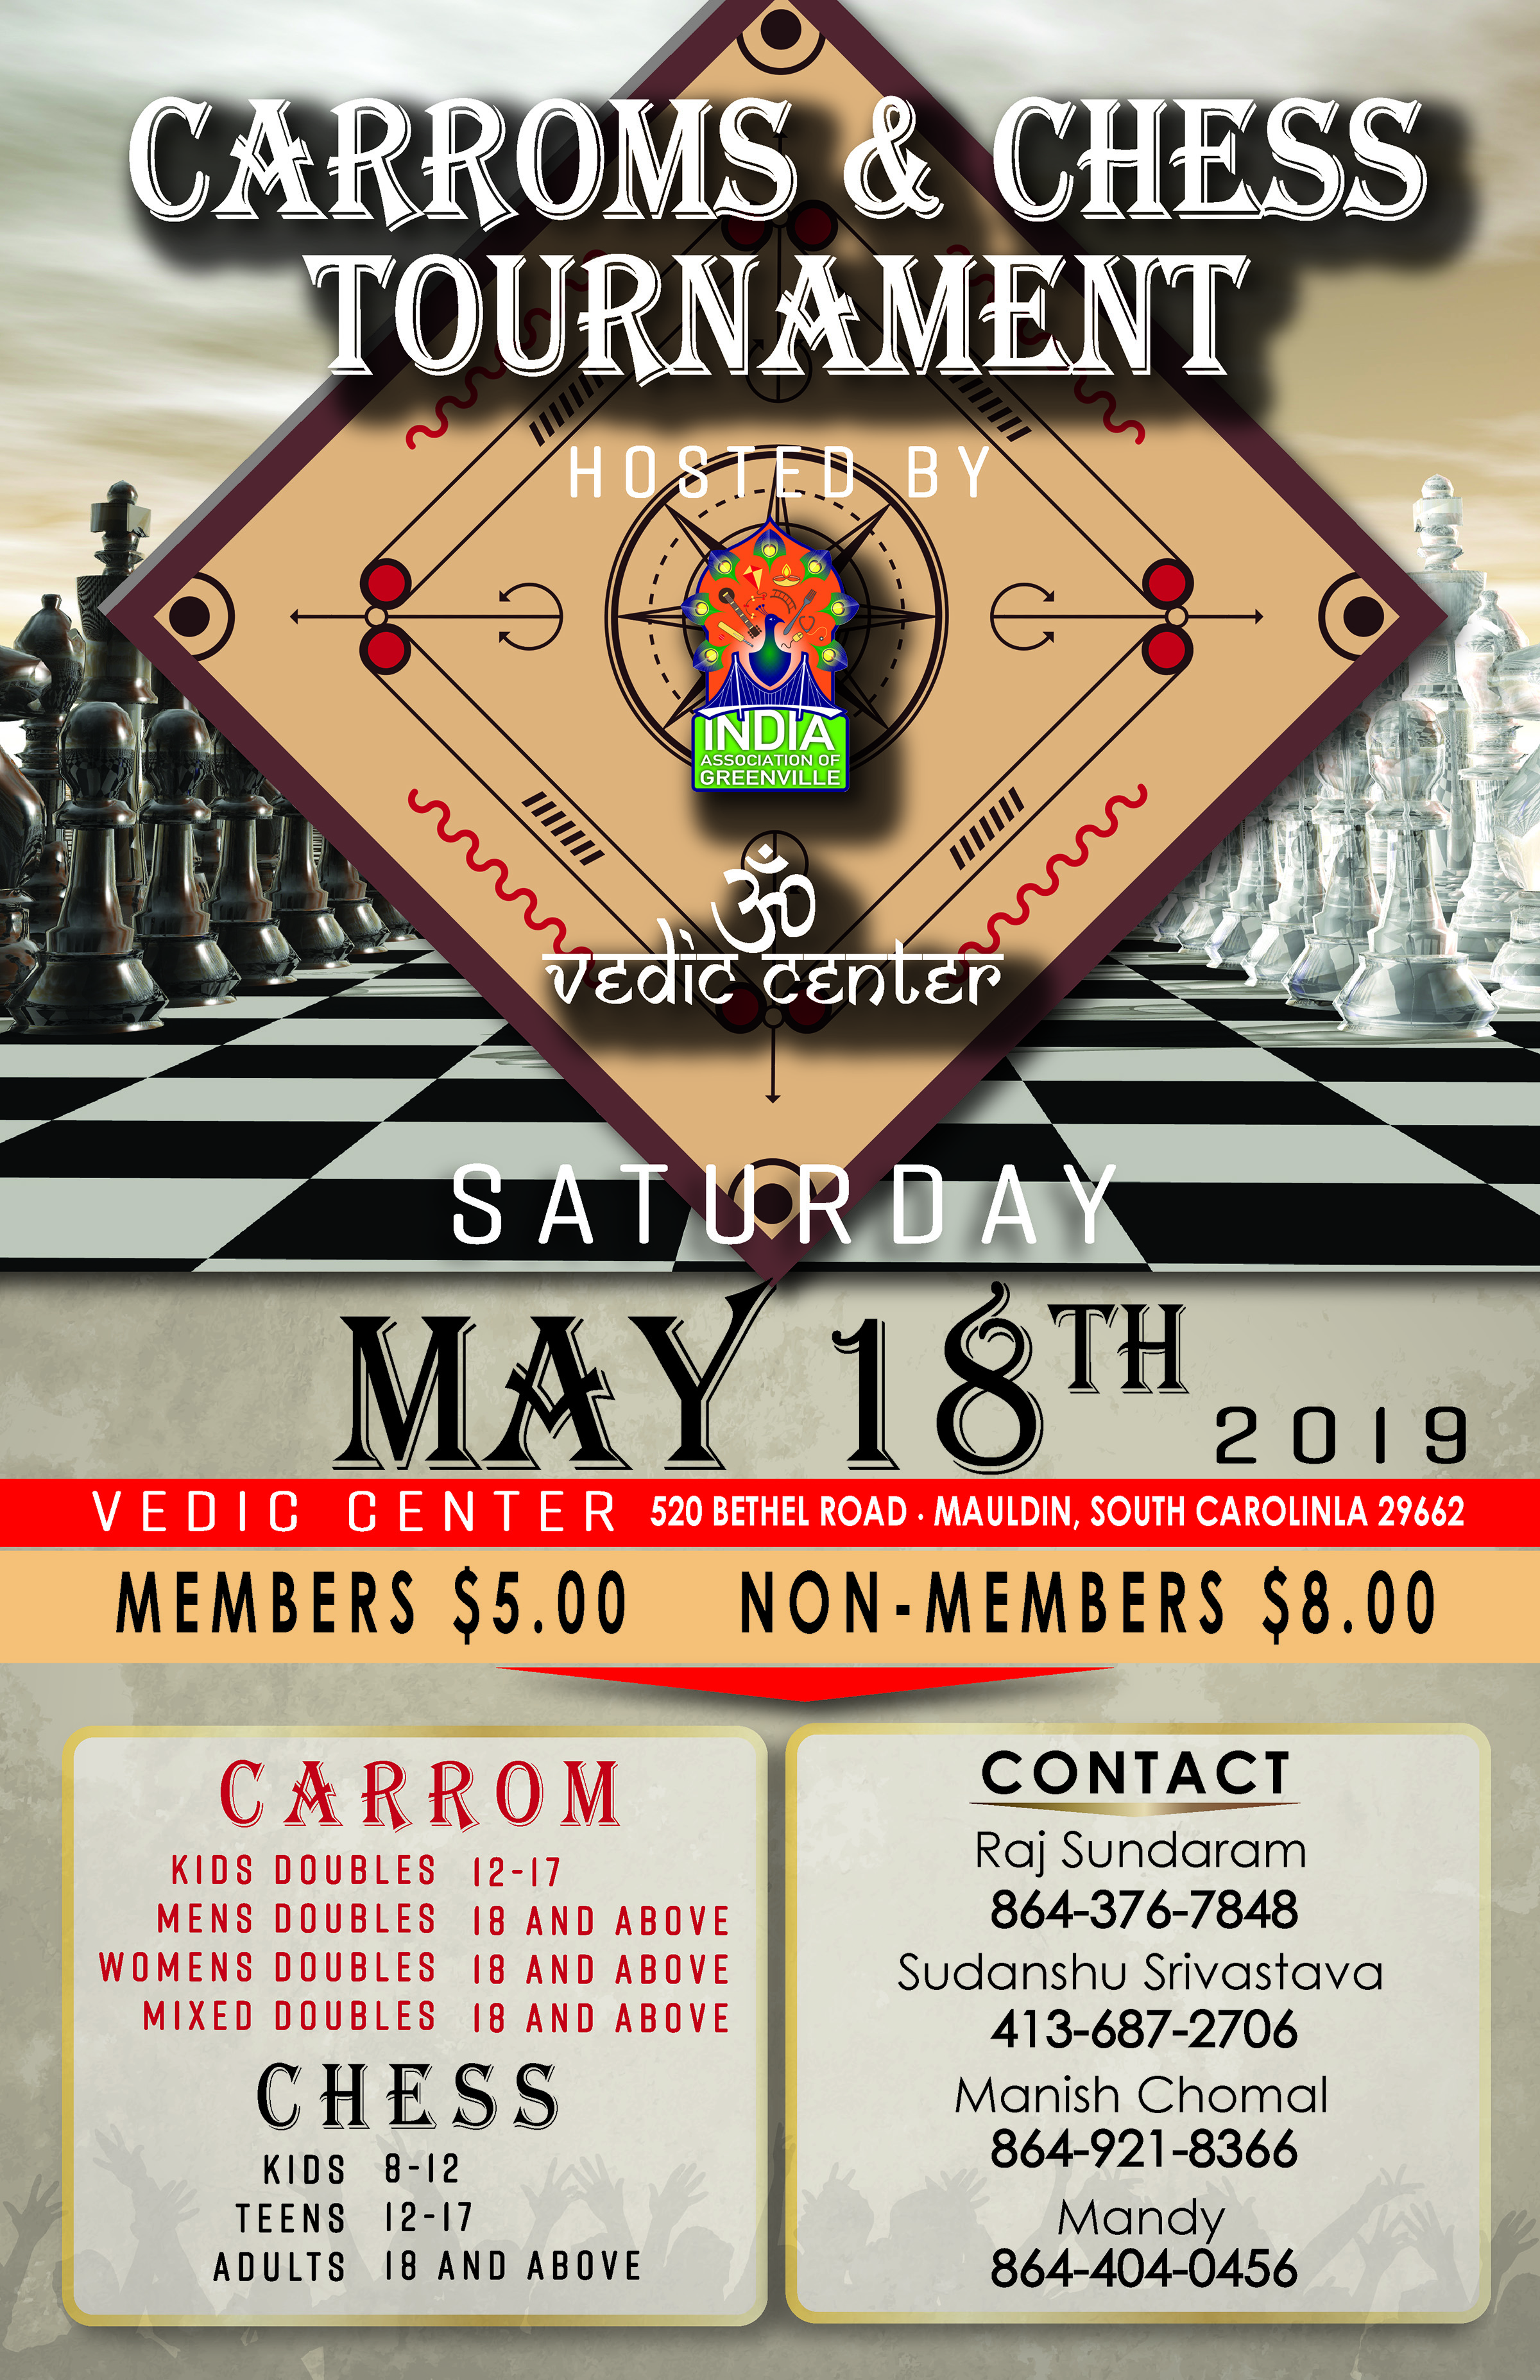 Carroms & Chess Tournament - May 18th